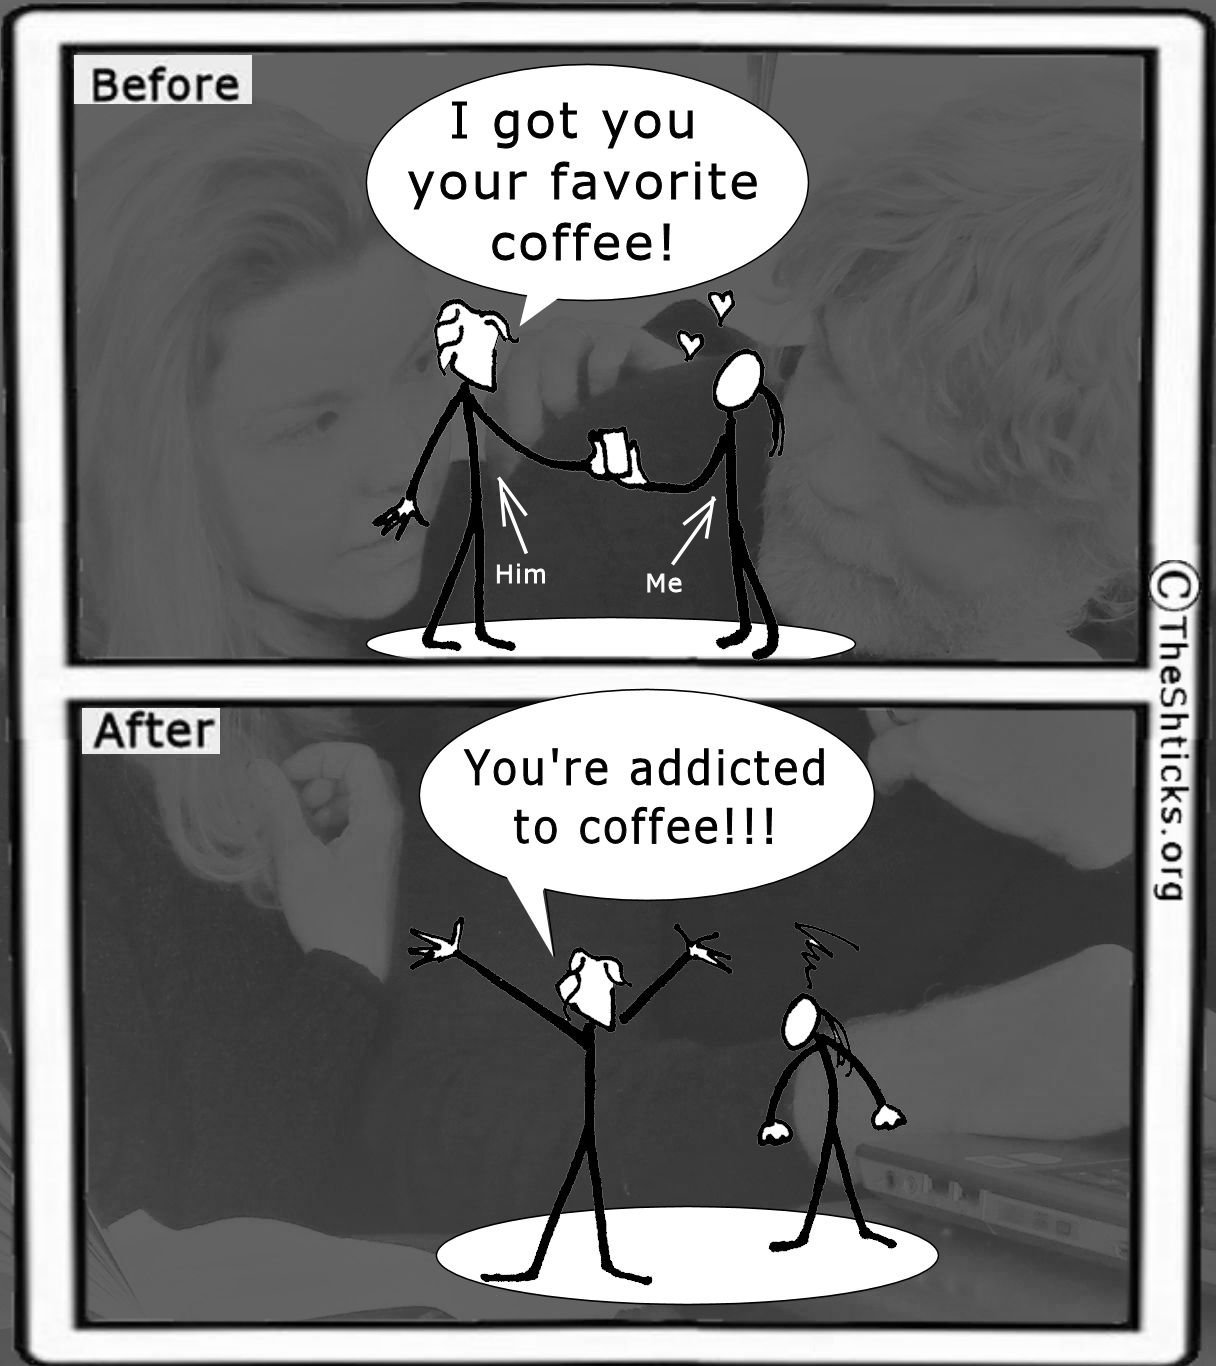 You're addicted to coffee